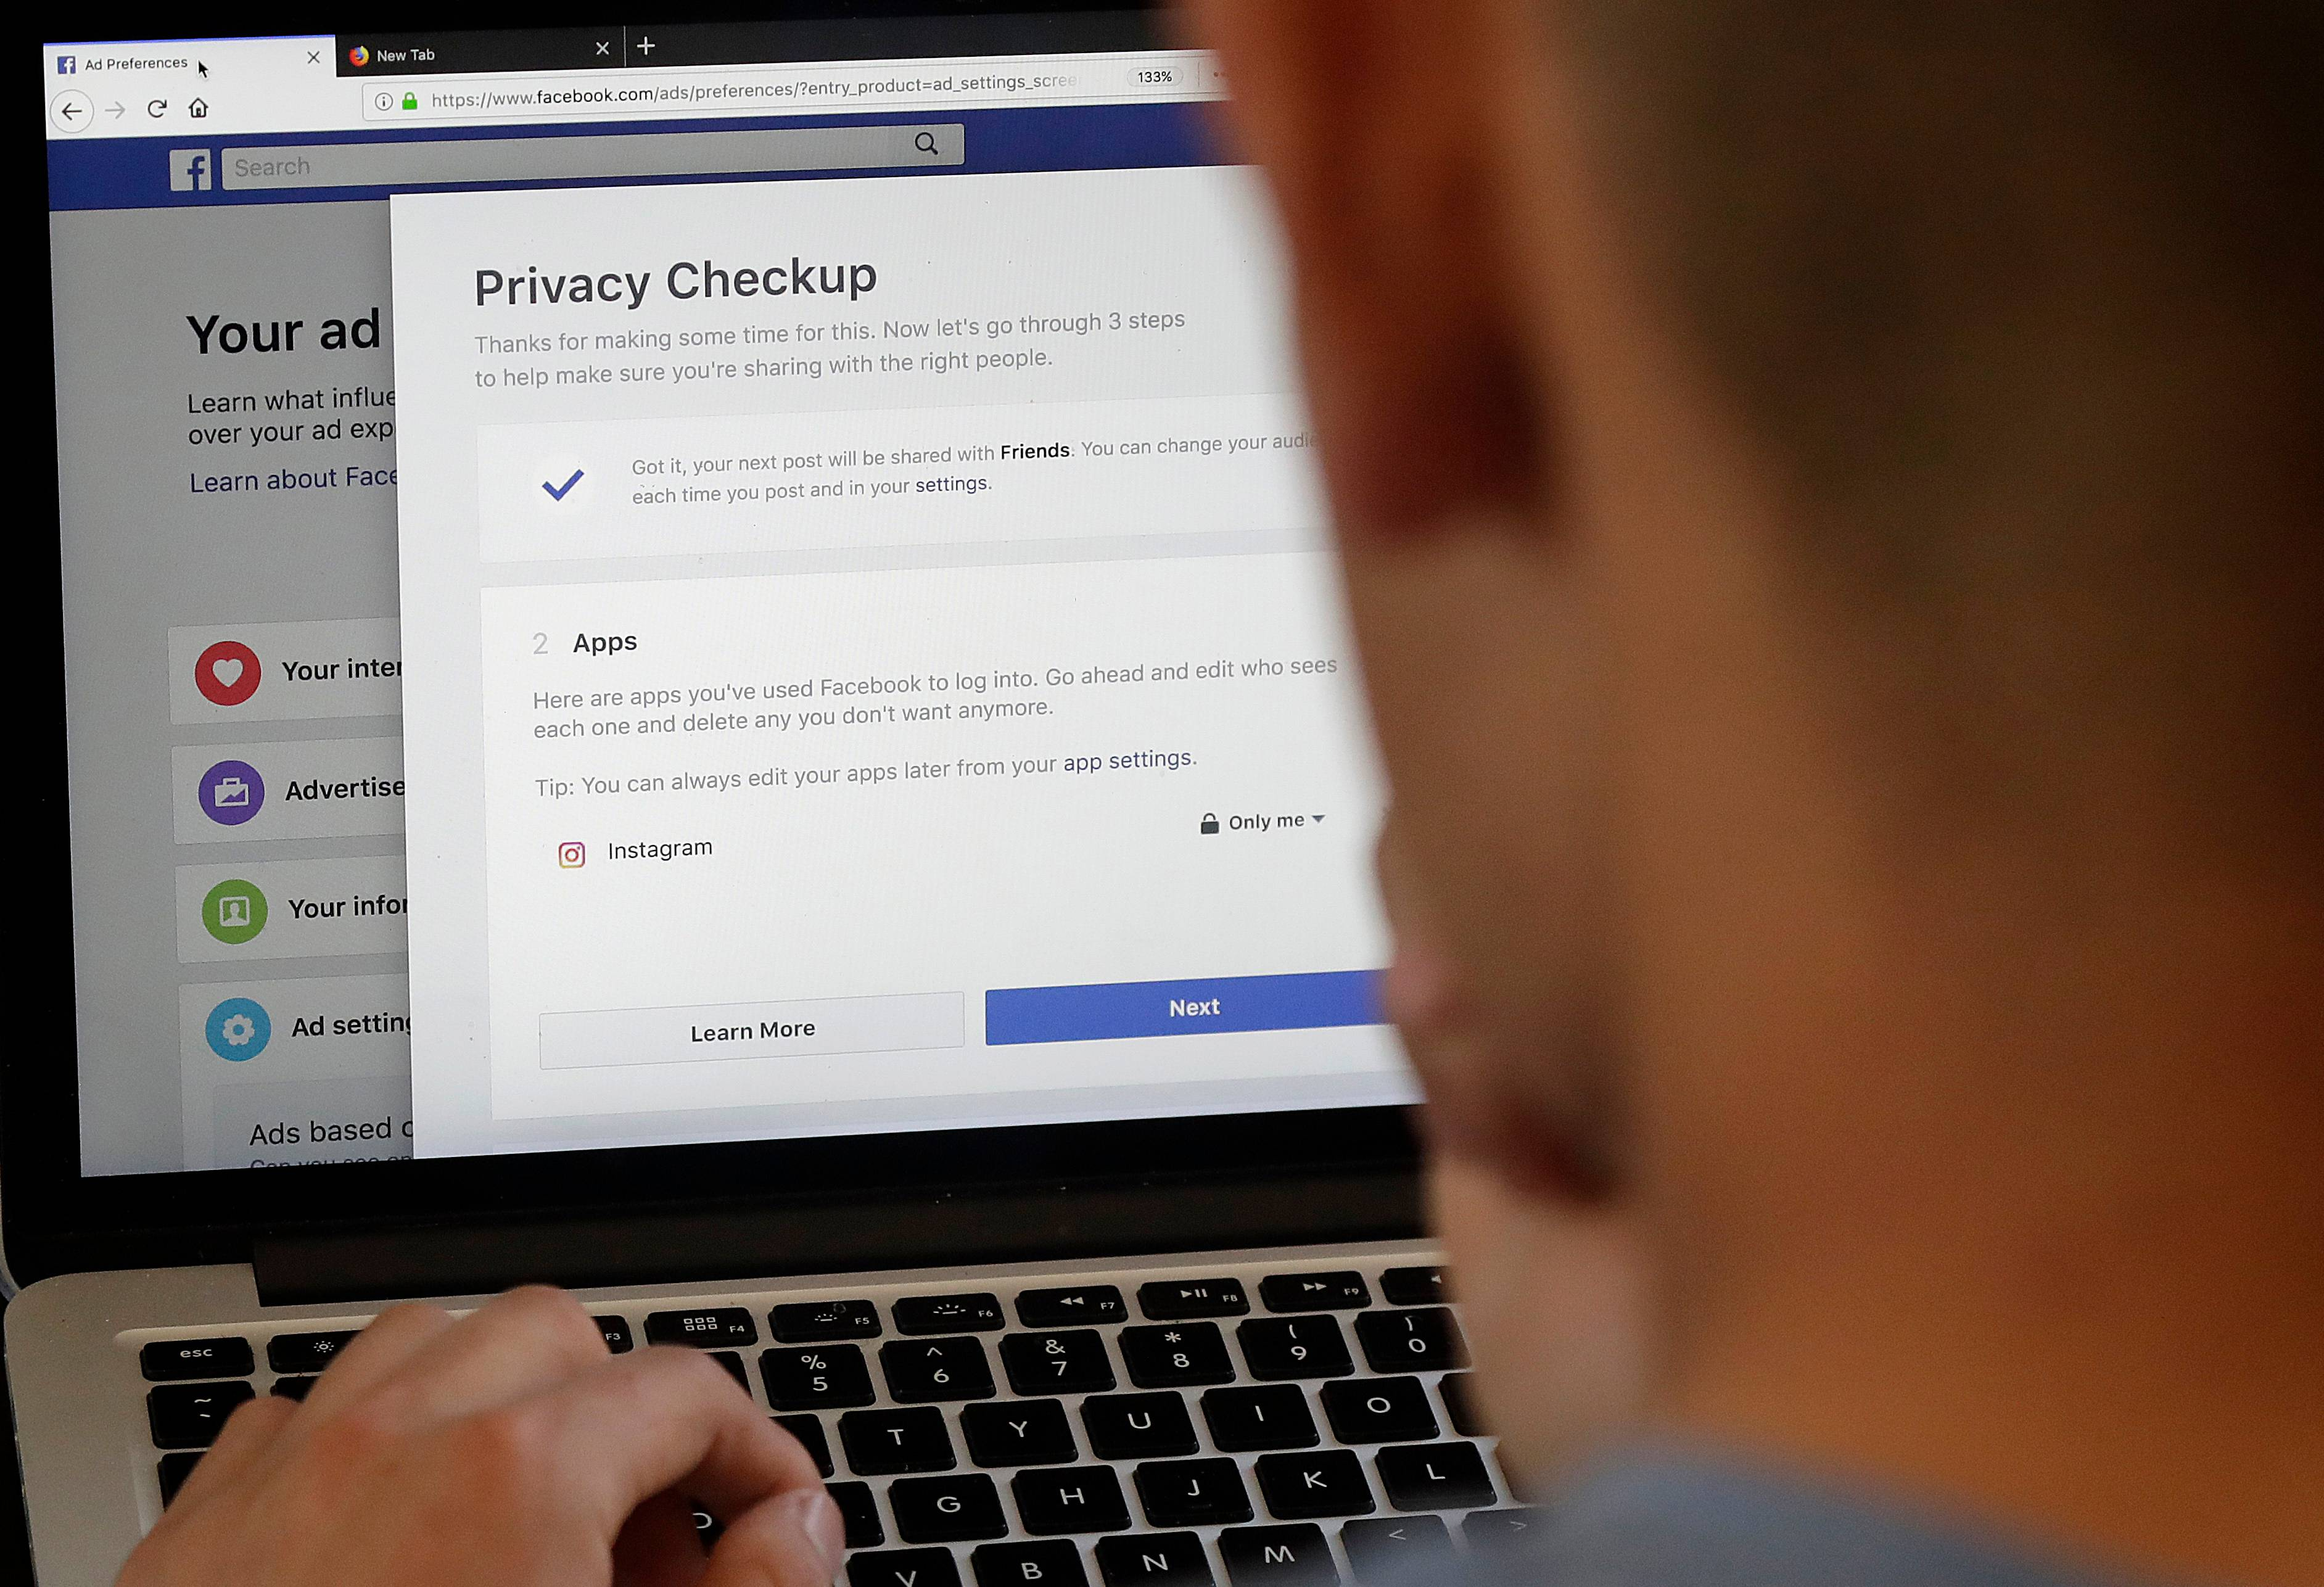 If you're on Facebook and haven't already done the privacy check, make the time. Now. Then repeat for Google and Oath